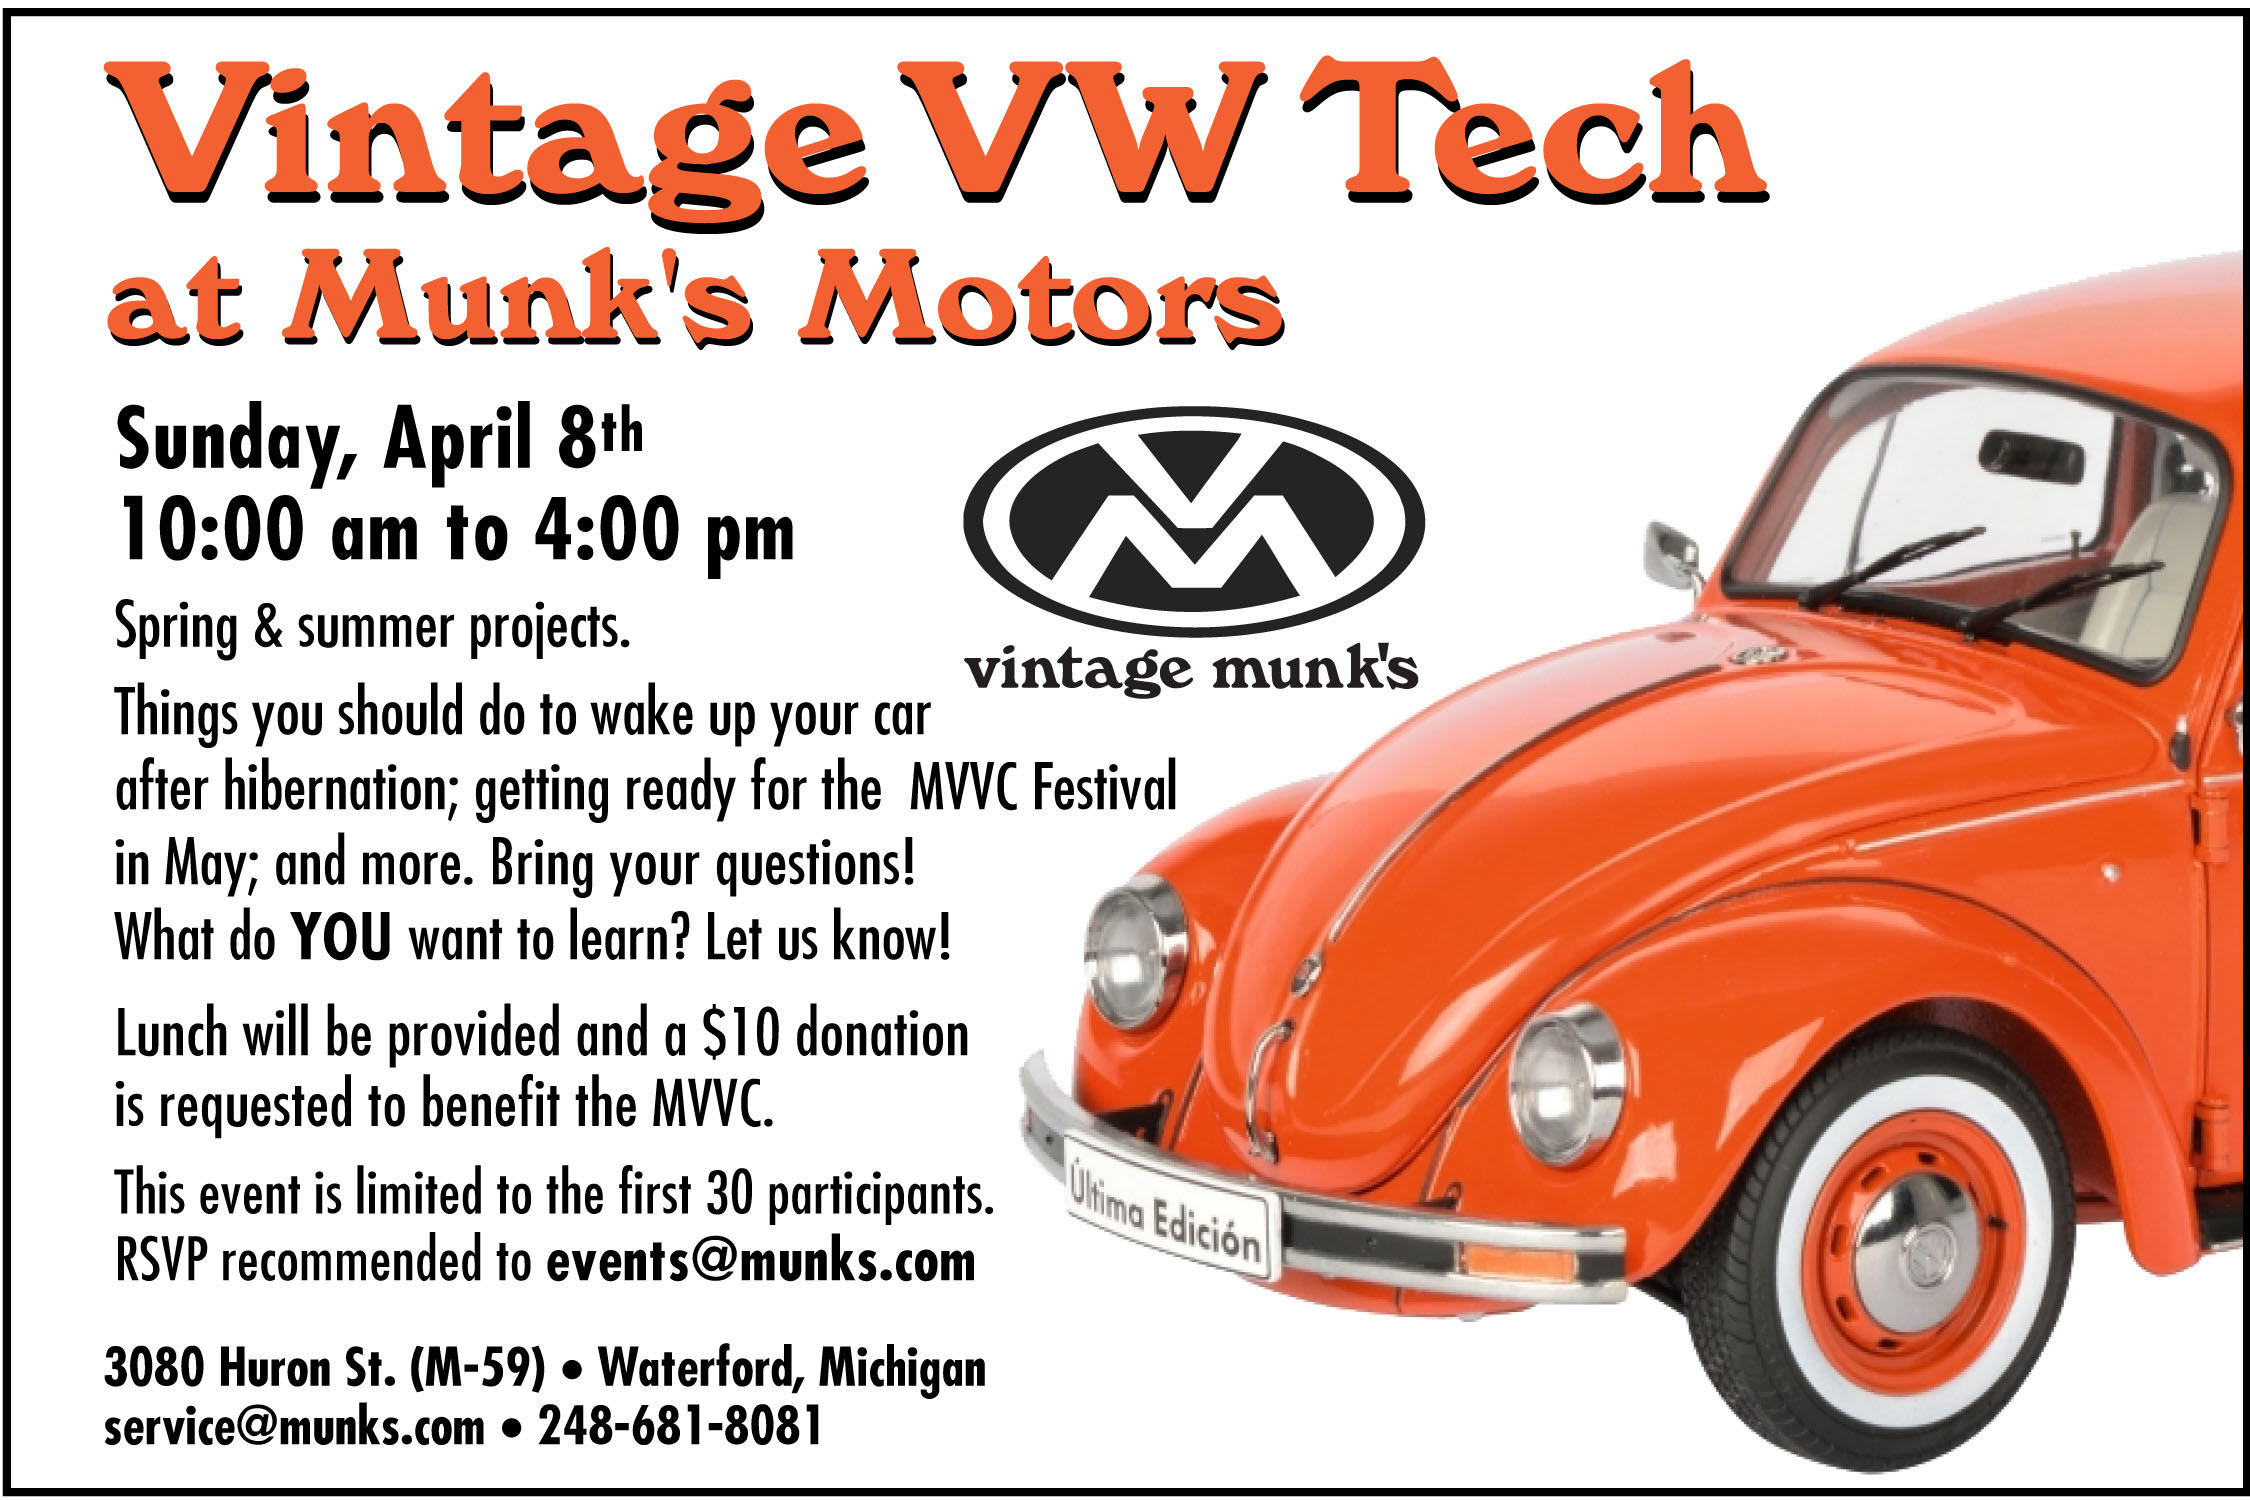 Vintage VW Tech Day